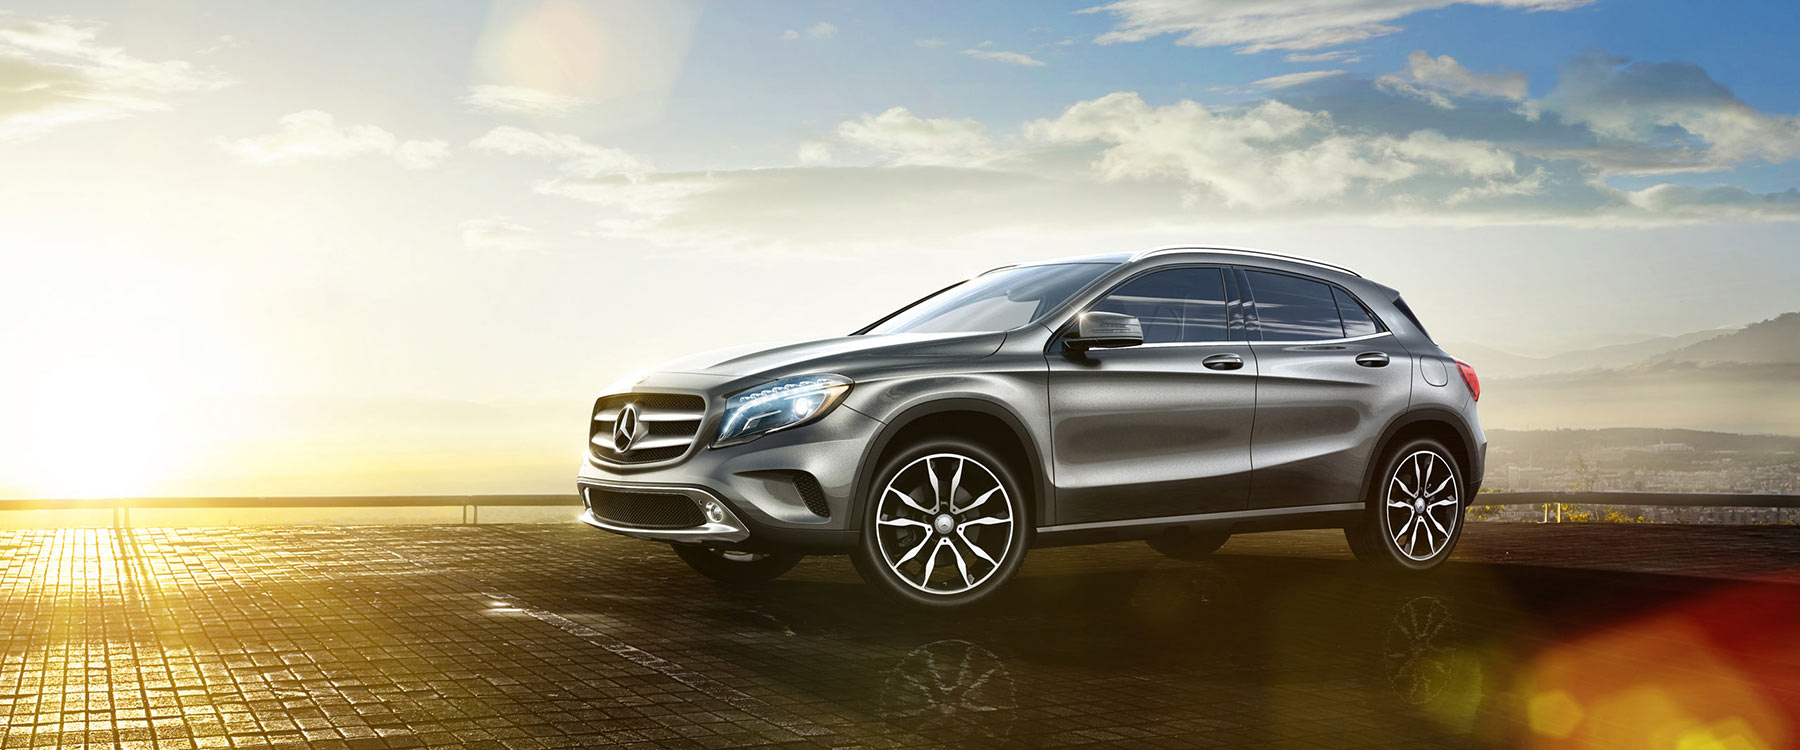 the stylish and sleek 2017 mercedes benz gla 250 suv. Black Bedroom Furniture Sets. Home Design Ideas